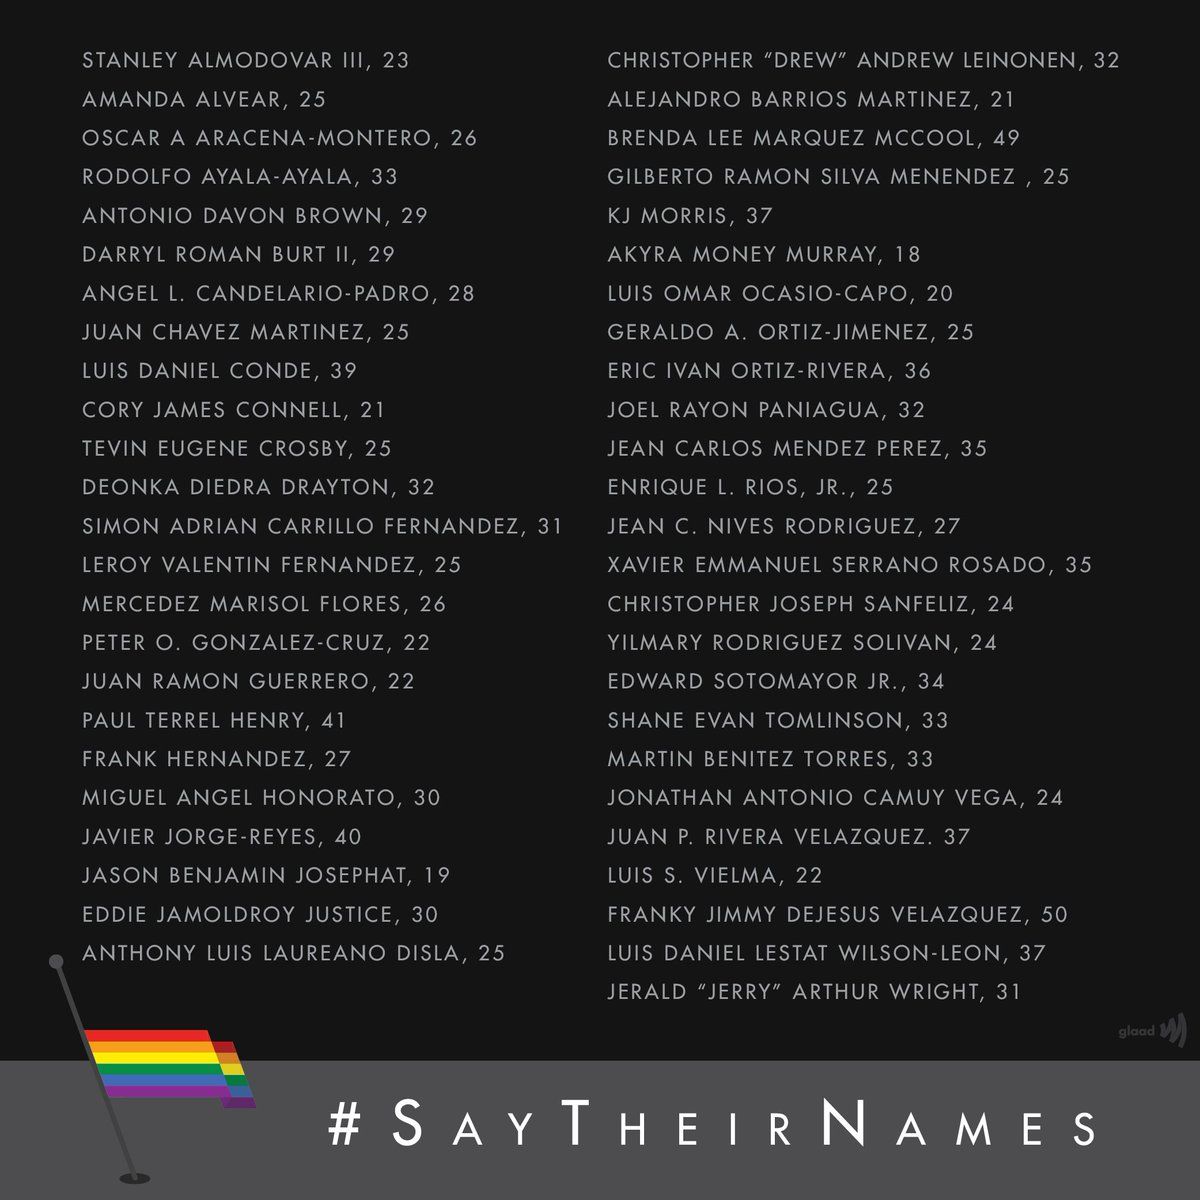 #SayTheirNames #WeAreOrlando https://t.co/38JO7mdEm1